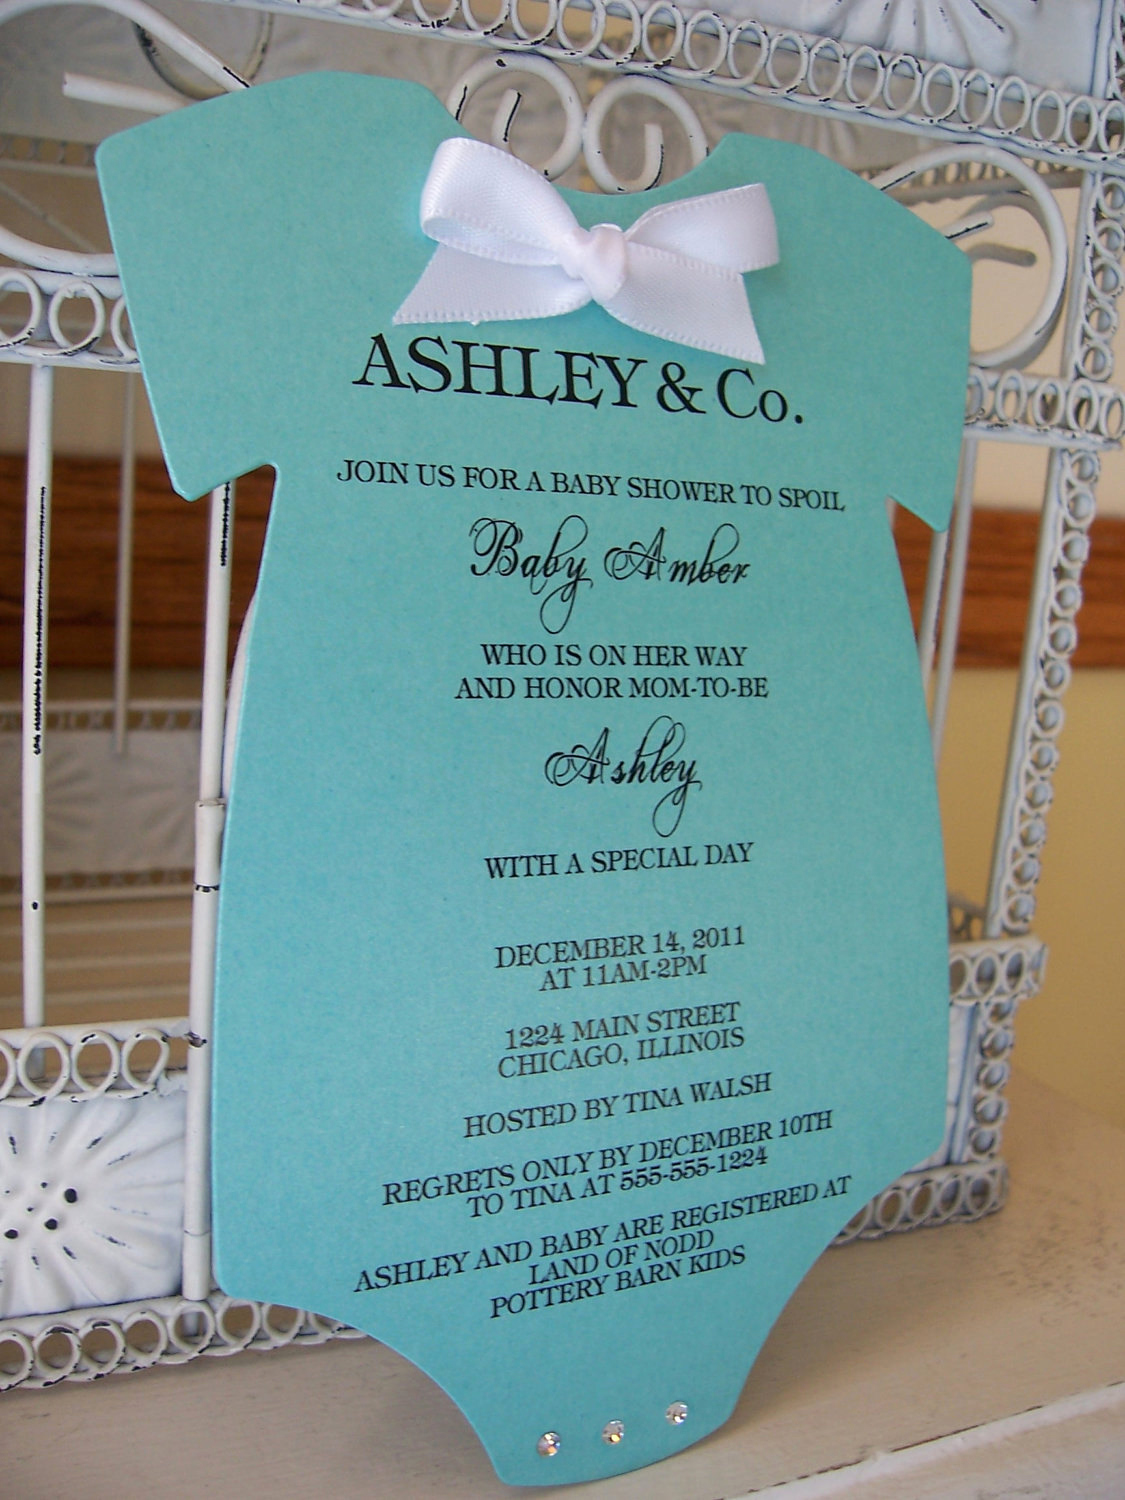 Tiffany and Co Invitation Template Awesome Tiffany Inspired Baby Shower Invitation Custom order for